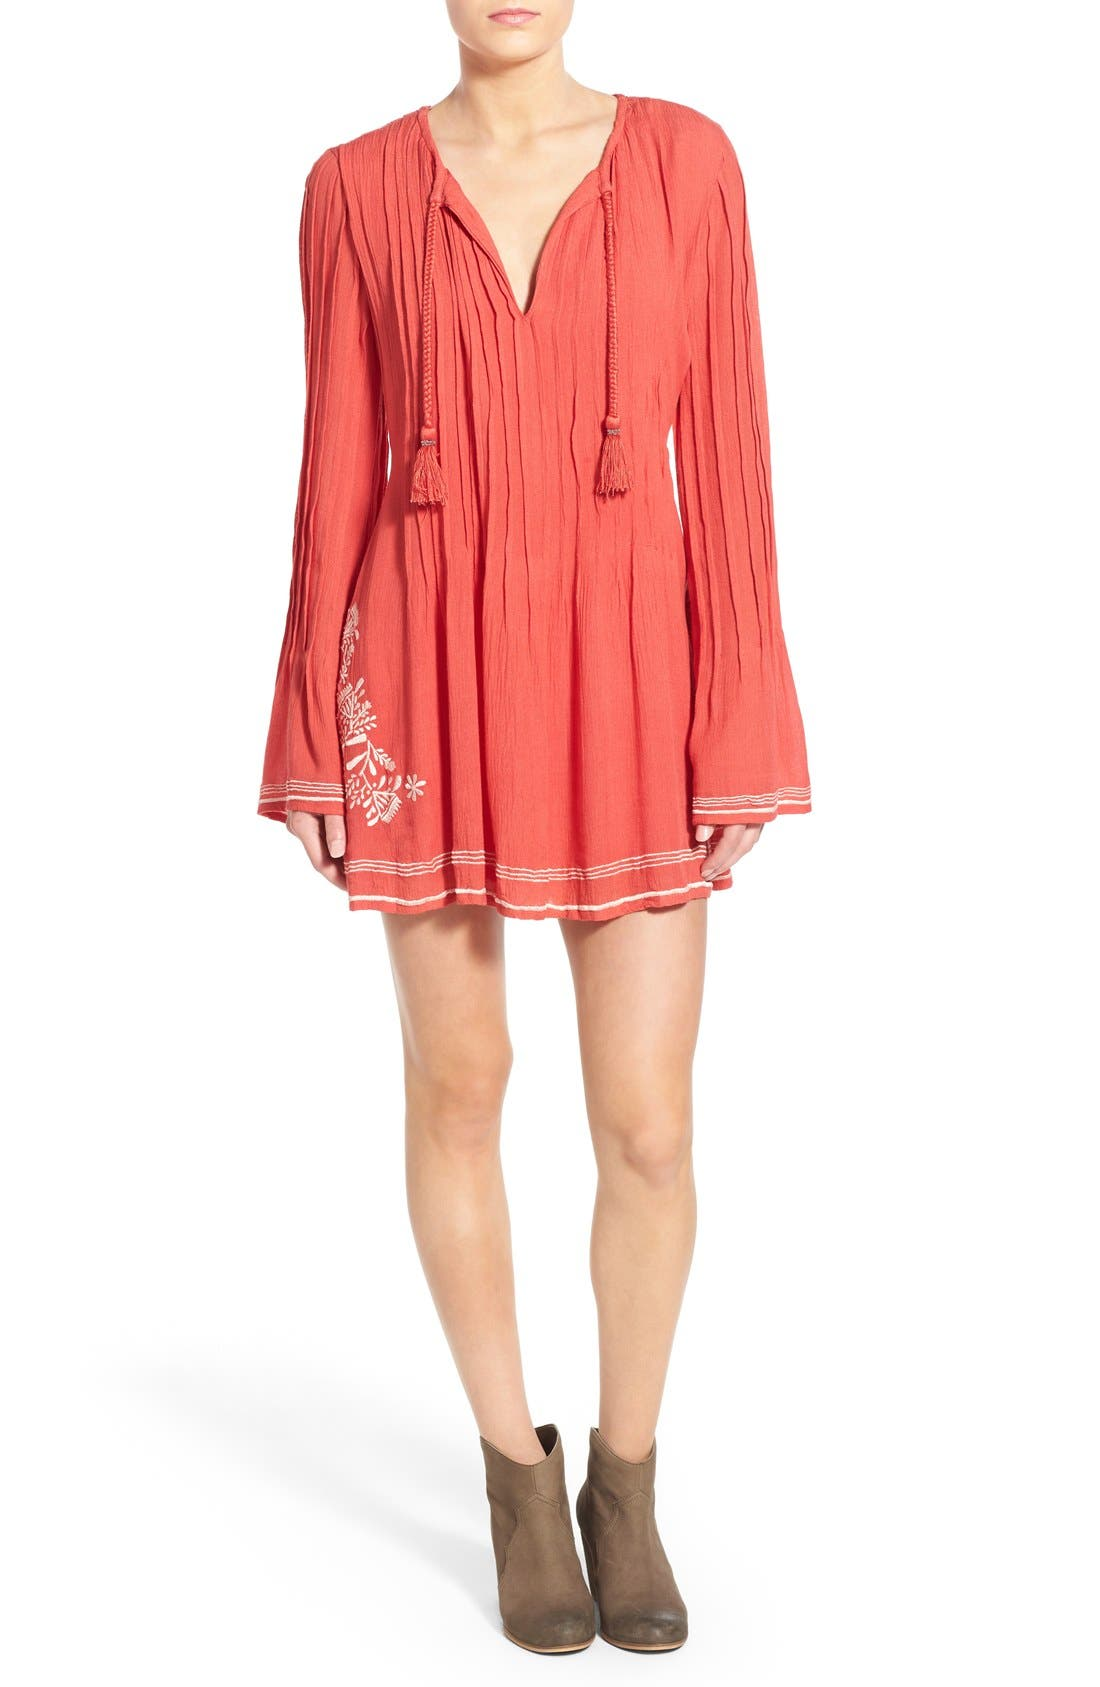 TULAROSA 'Audrey' Embroidered Tunic Dress, Main, color, 650